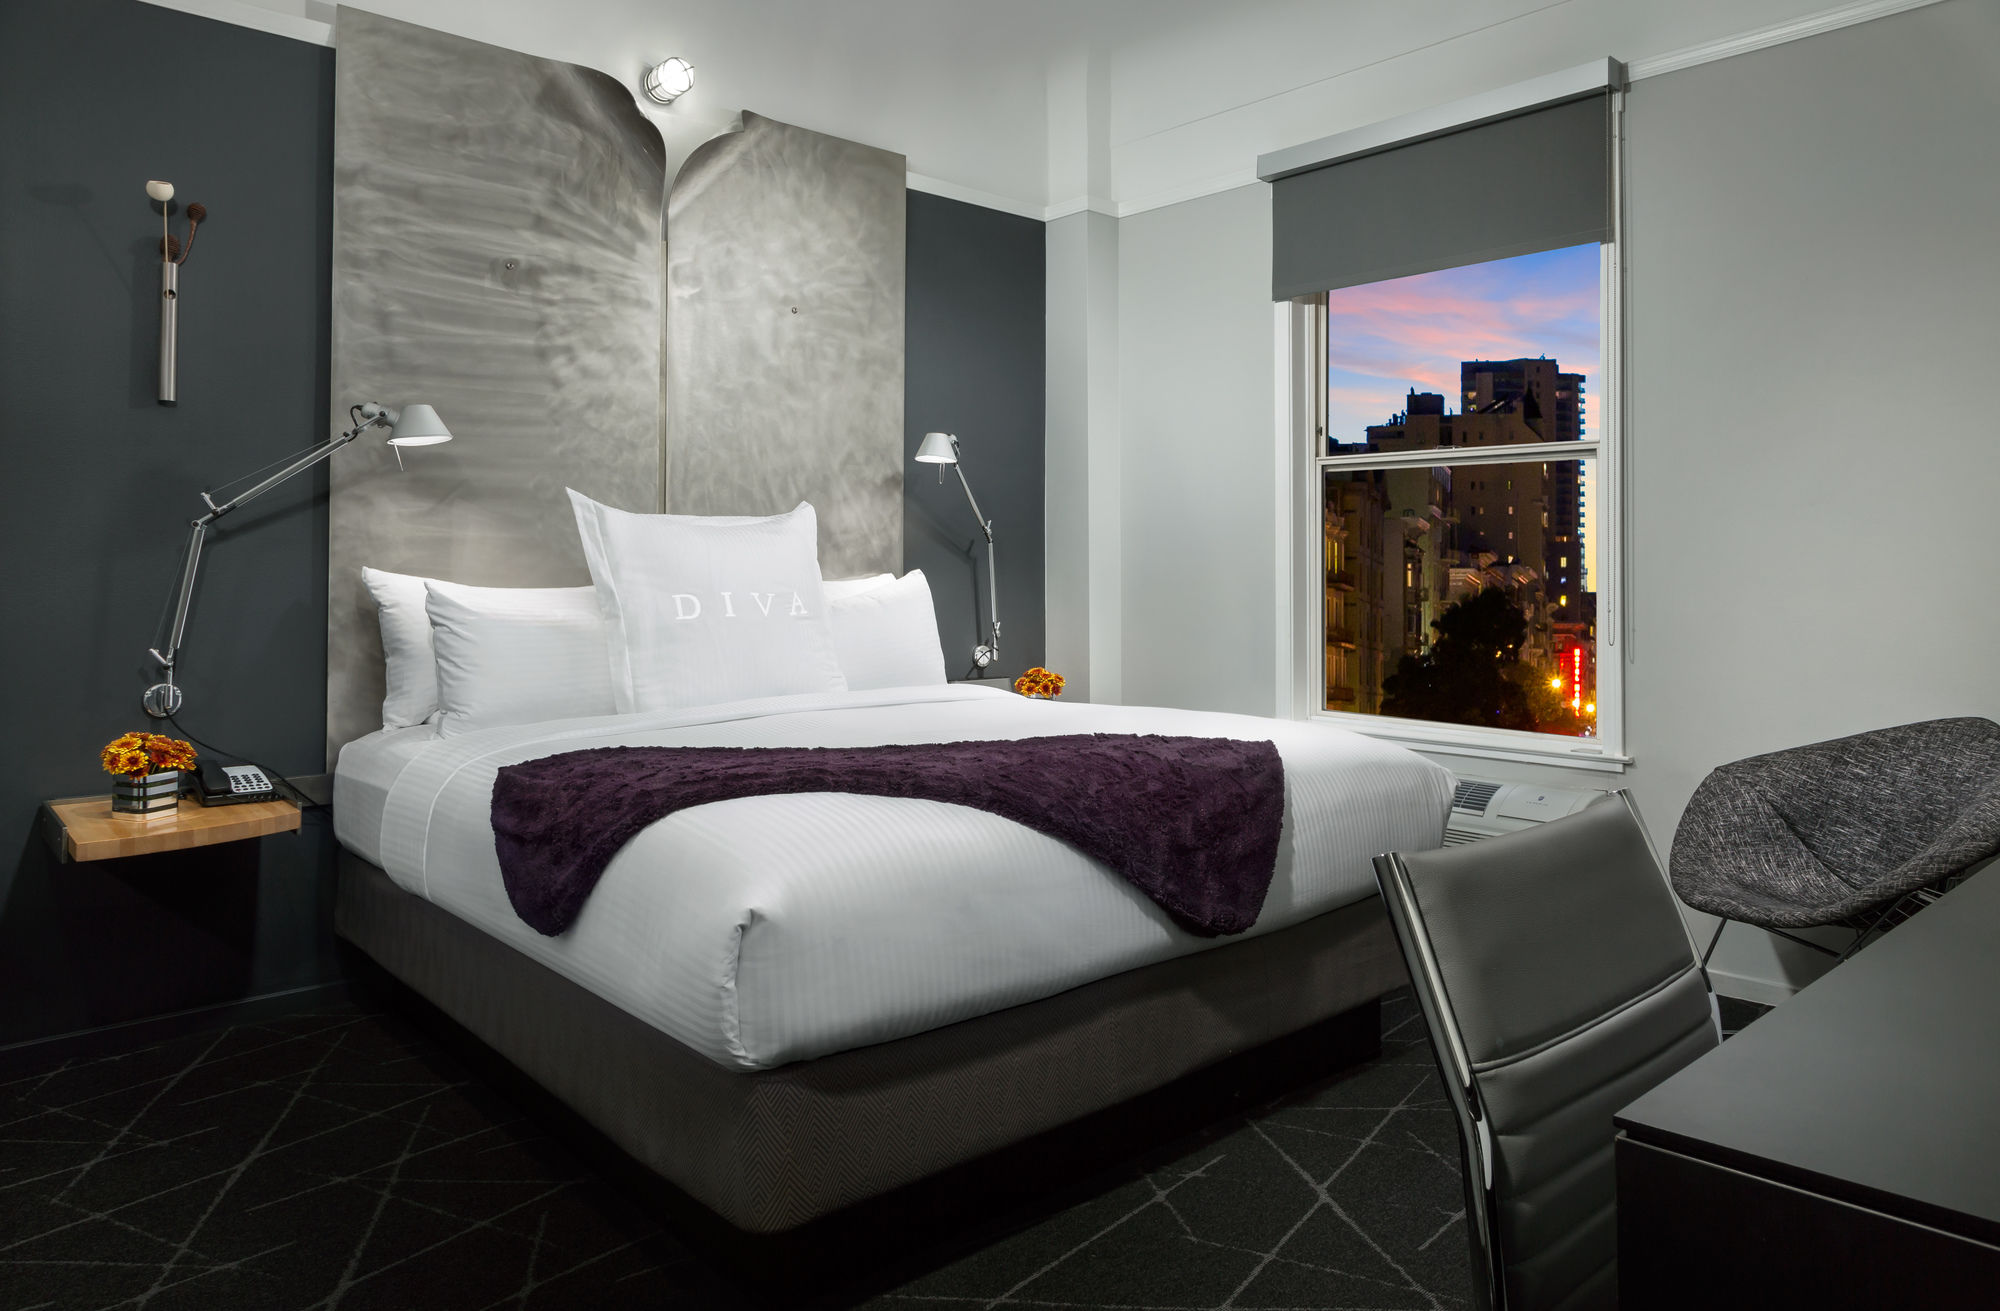 Discount Coupon For Hotel Diva In San Francisco